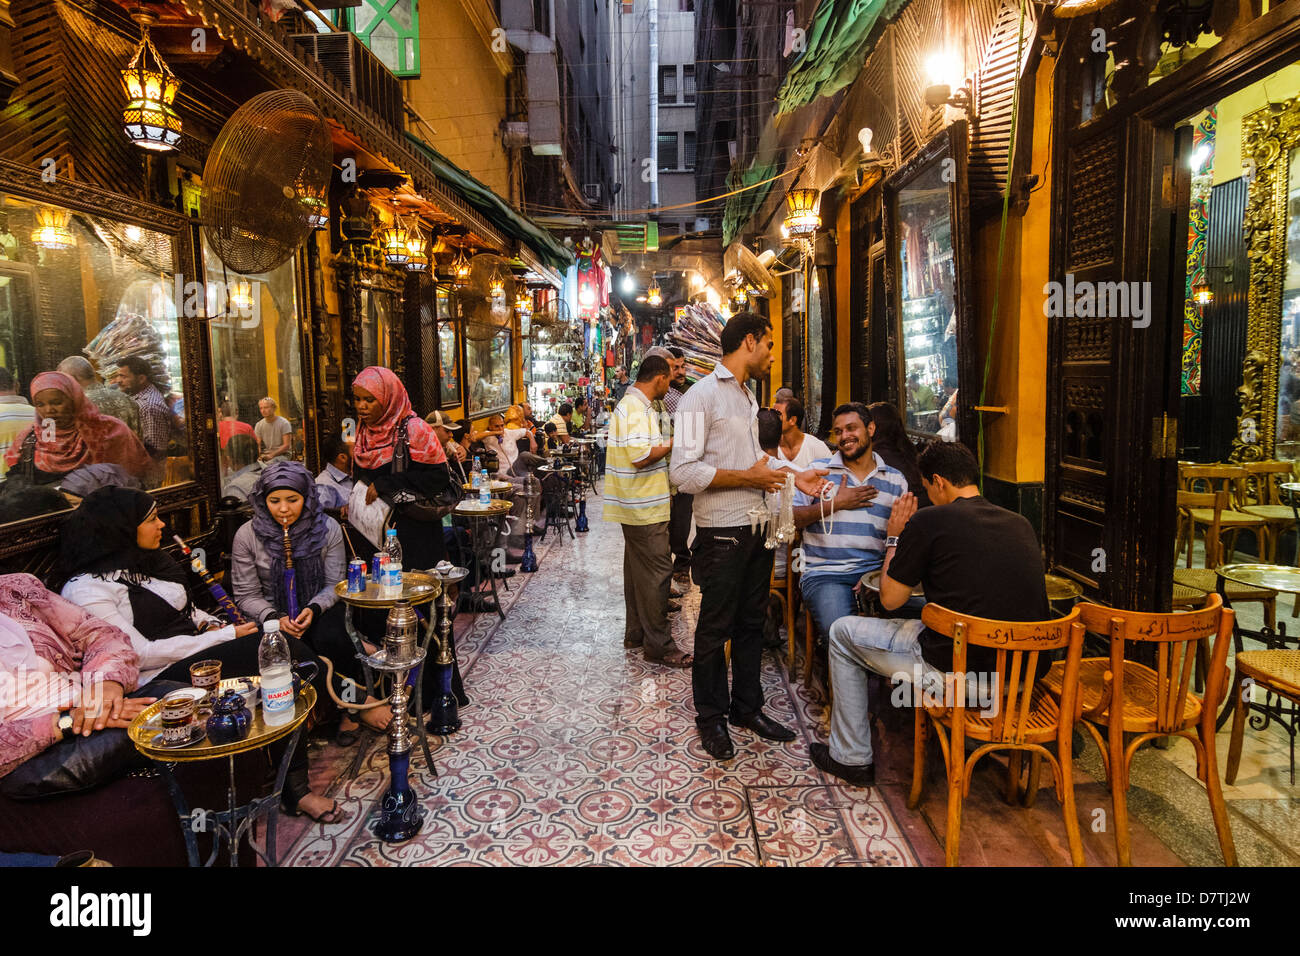 Fishawi´s Coffehouse at Khan al-Khalili, Islamic Cairo, Egypt - Stock Image